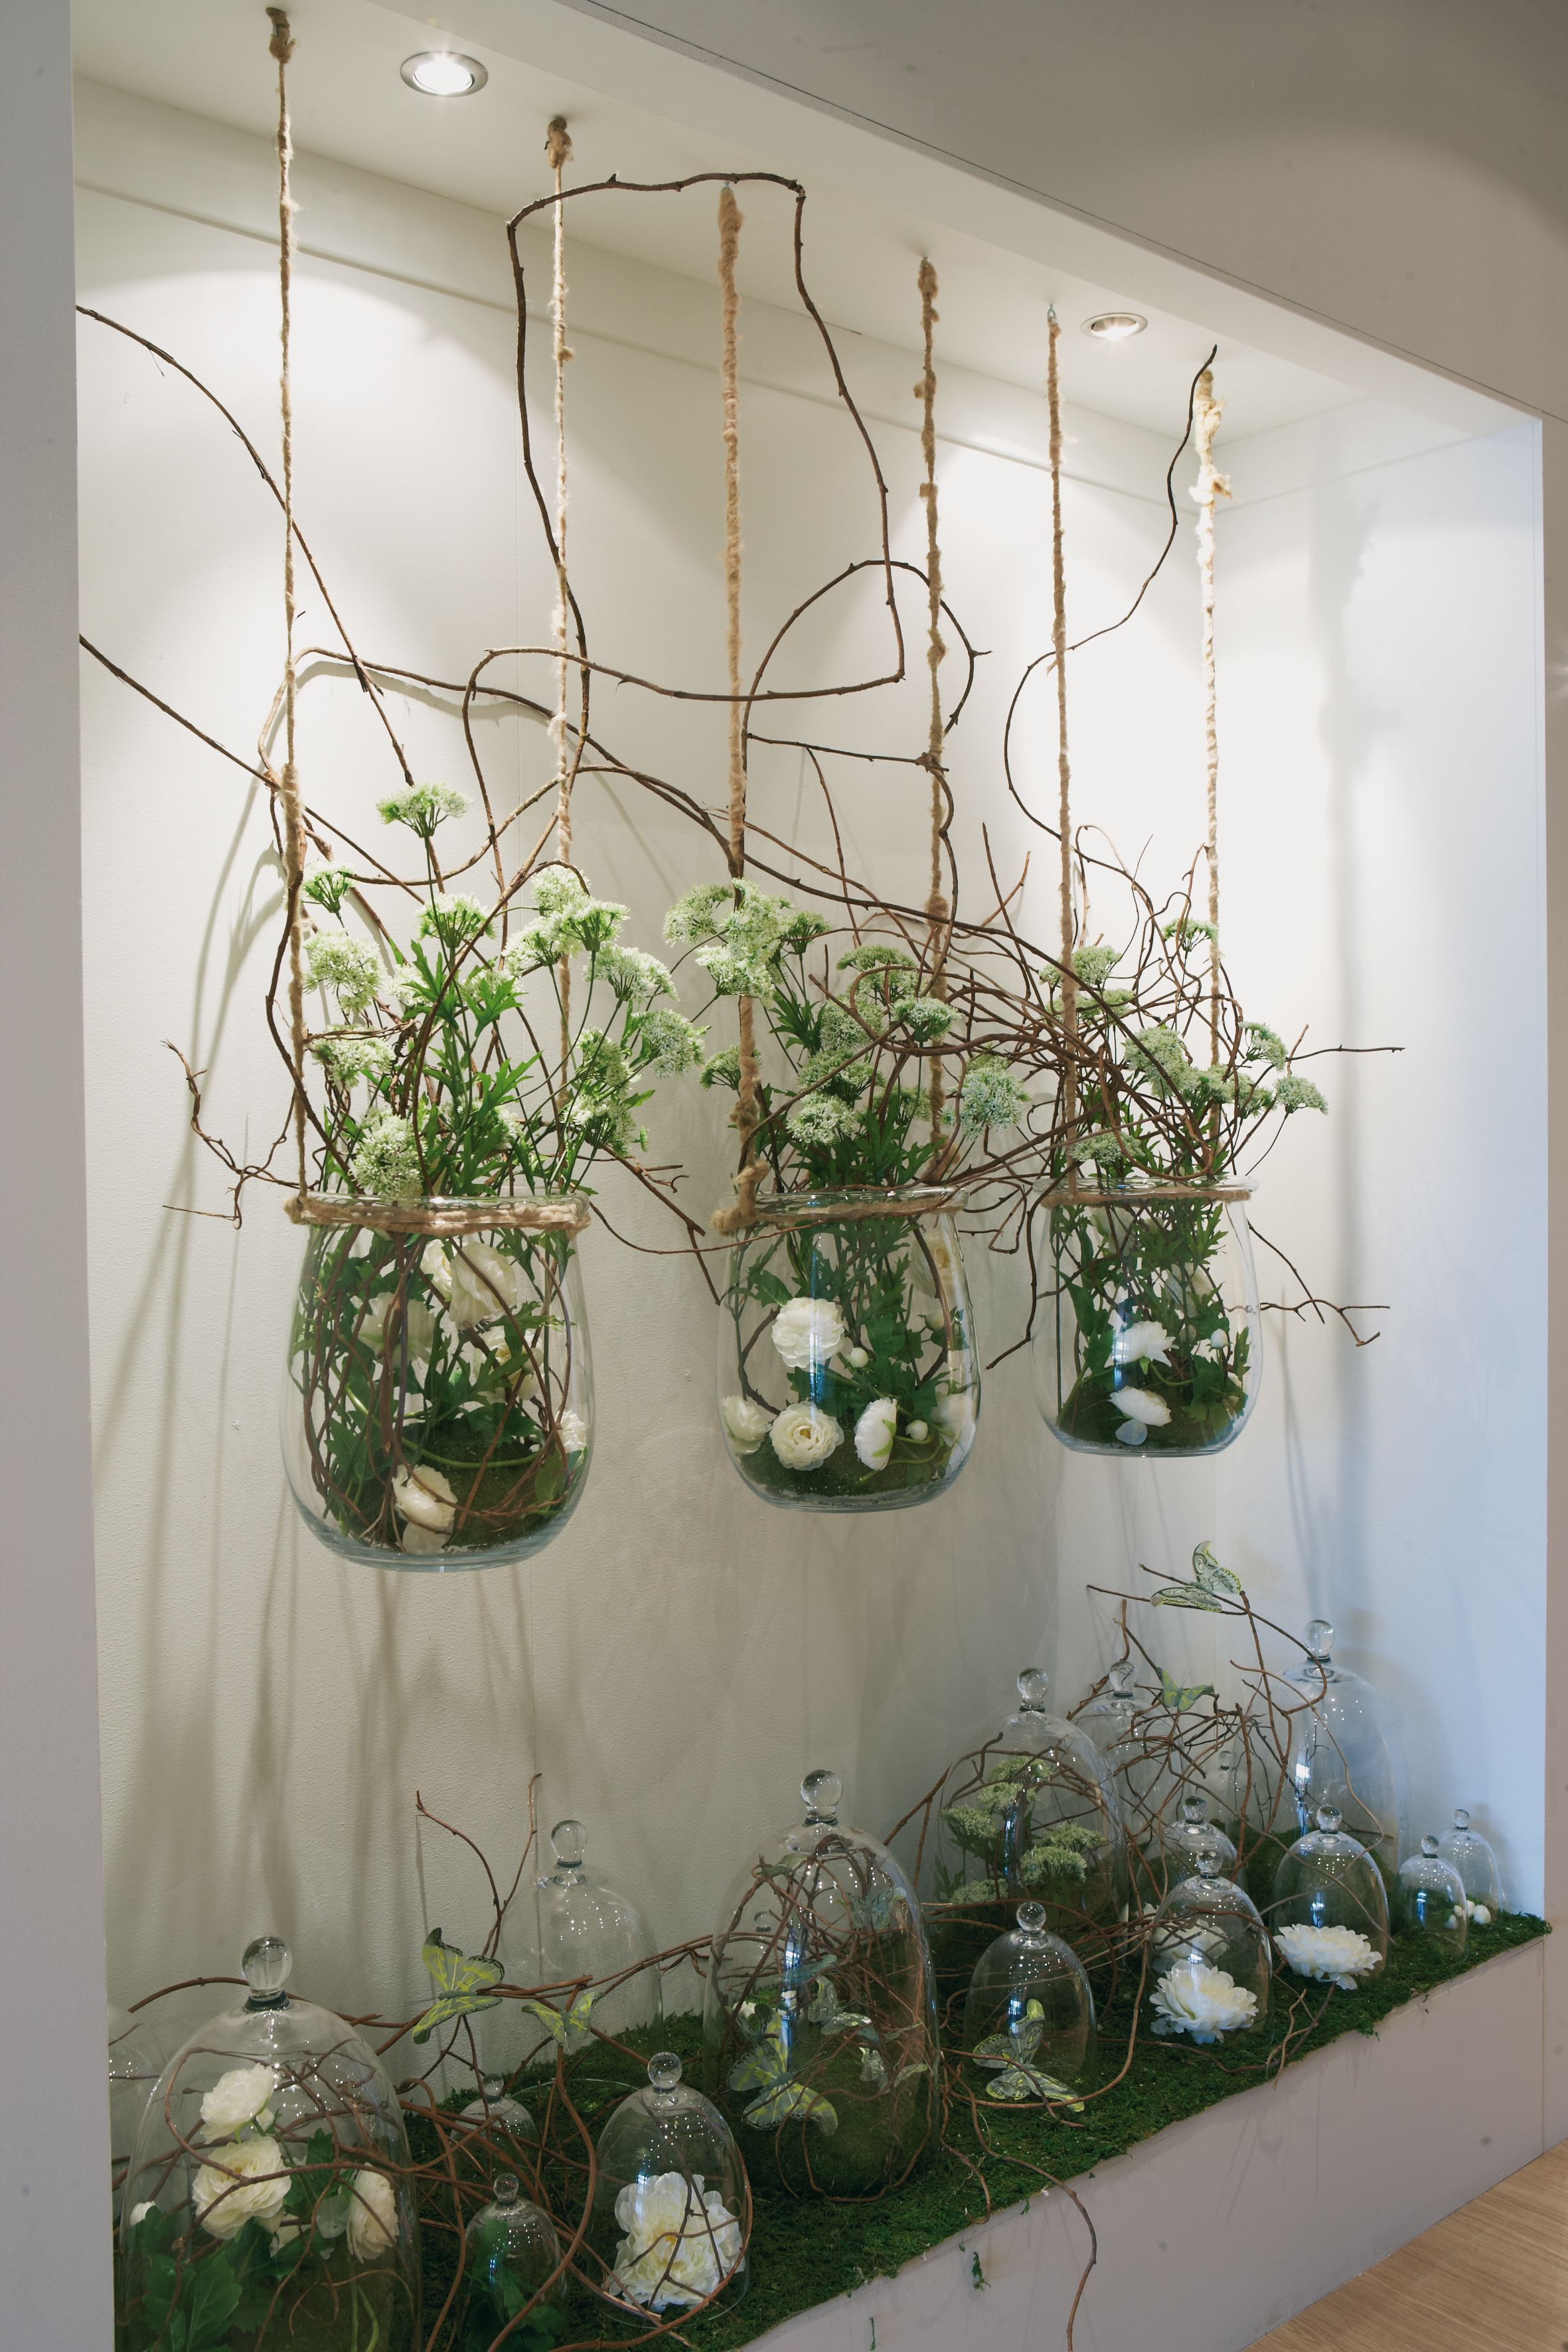 Decoration De Vitrine De Paques Interesting Simple White Flowers Under Bell Jars Maybe Add Moss